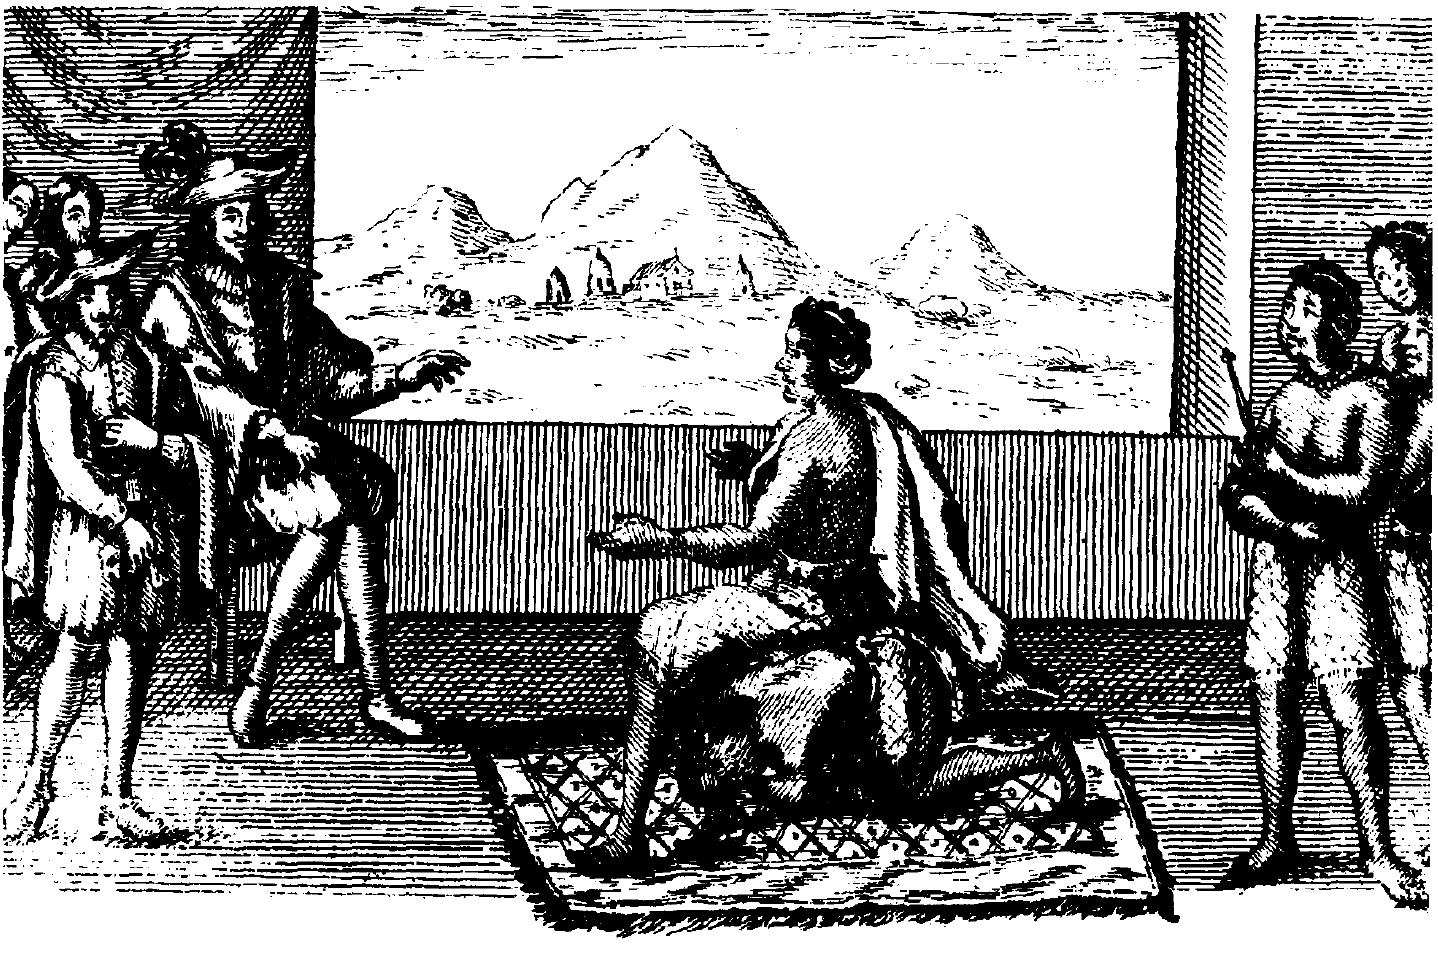 Queen Nzinga in peace negotiations with the Portuguese governor in Luanda, 1657. Public domain image courtesy of Wikimedia Commons.